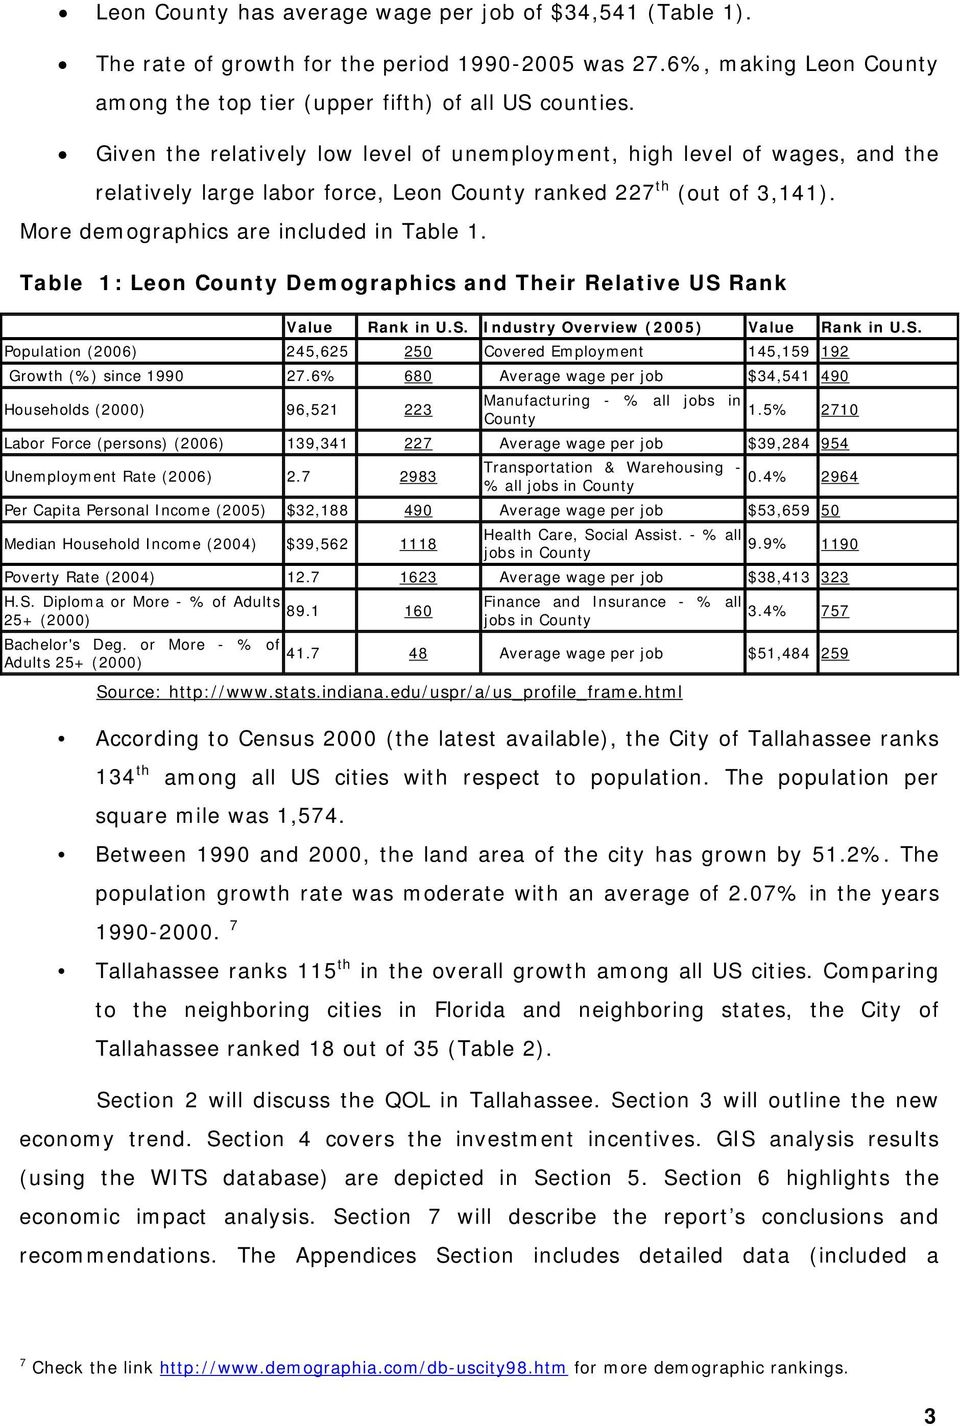 Table 1: Leon County Demographics and Their Relative US Rank Value Rank in U.S. Industry Overview (2005) Value Rank in U.S. Population (2006) 245,625 250 Covered Employment 145,159 192 Growth (%) since 1990 27.